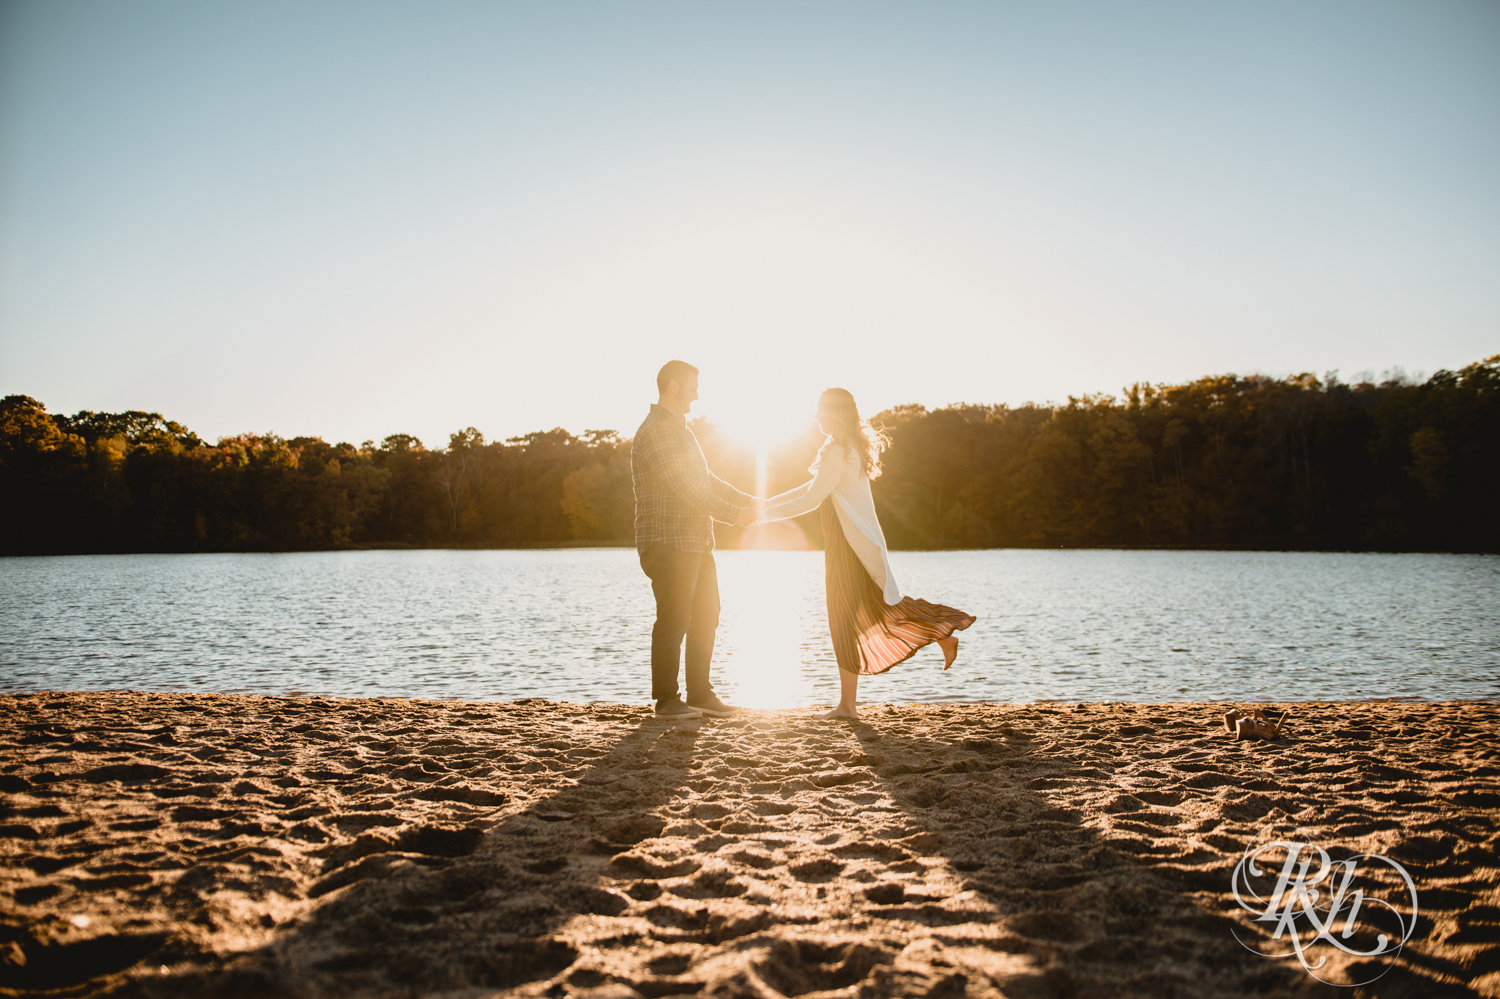 Minnesota Wedding Photography - RKH Images - Best of 2018 (47 of 51).jpg